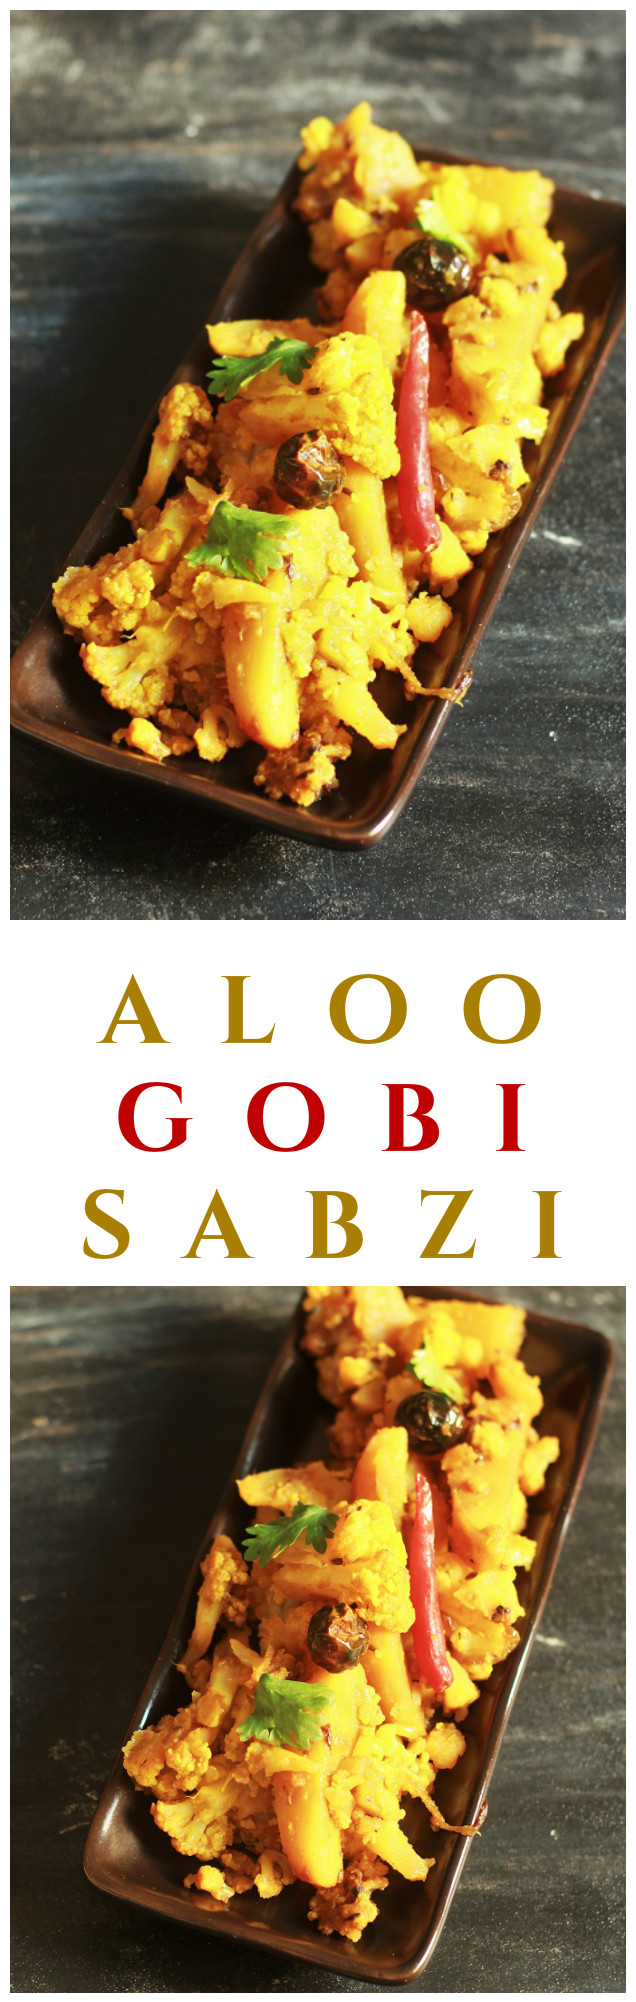 Aloo Gobi Recipe-How to make Dry Aloo Gobi-The aloo gobi recipe is nothing but a dry sabzi made with potato and cauliflower. It is very simple, easy and fast to make and everyone will love it from kids to adults #indianrecipes #aloogobi #halalrecipes #dryaloogobi